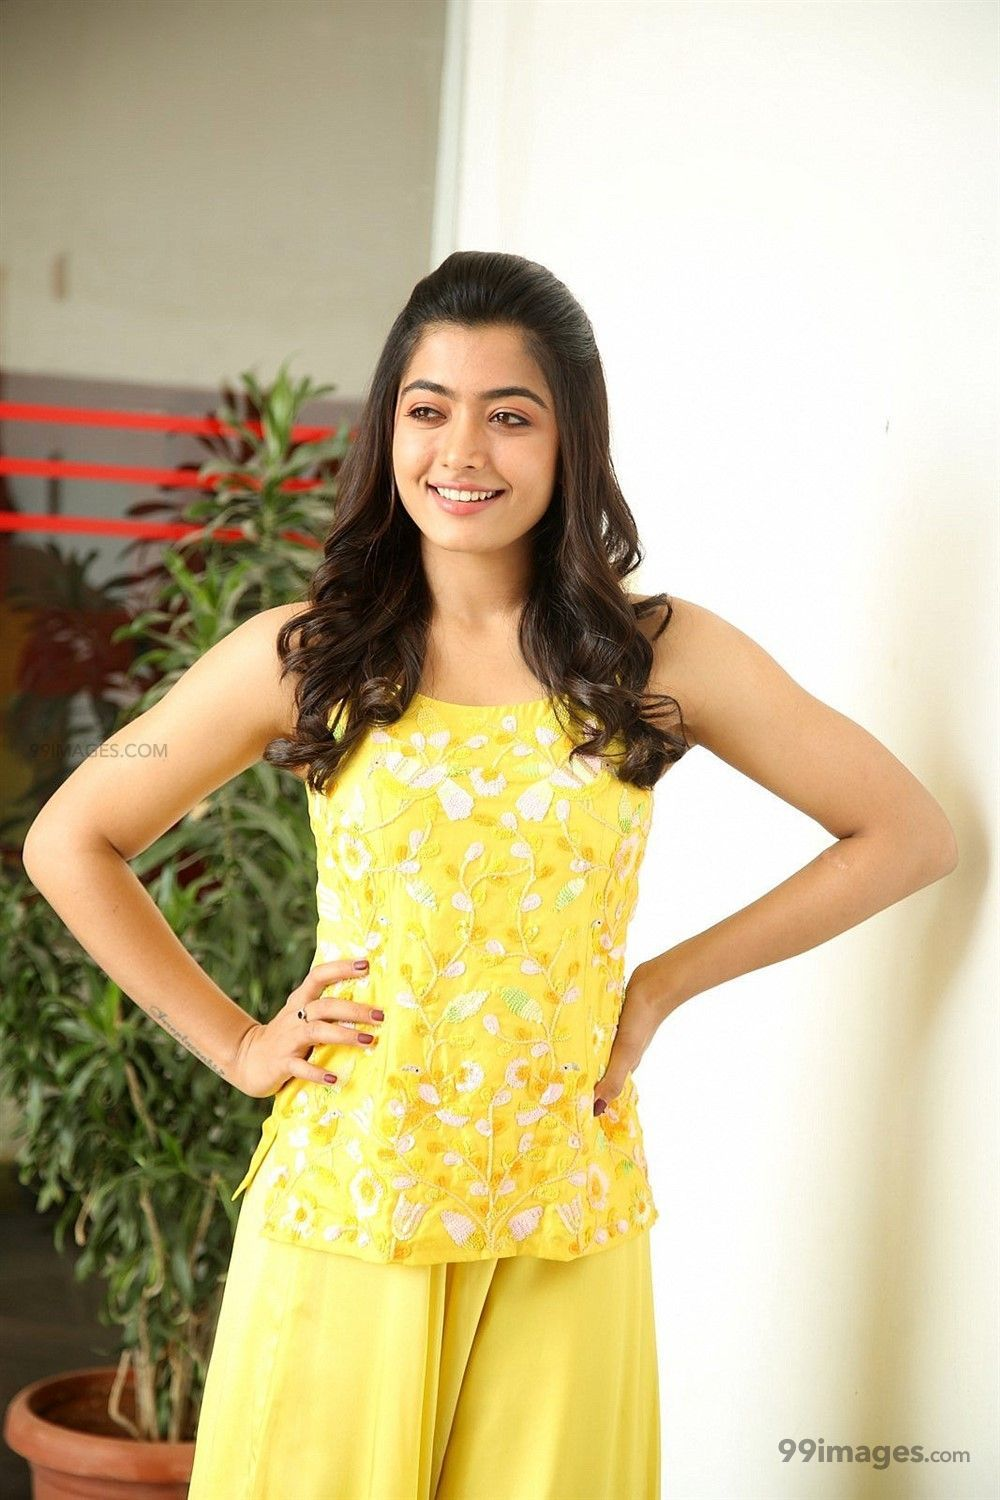 Rashmika Mandanna Beautiful HD Photos & Mobile Wallpapers HD (Android/iPhone) (1080p) (363771) - Rashmika Mandanna